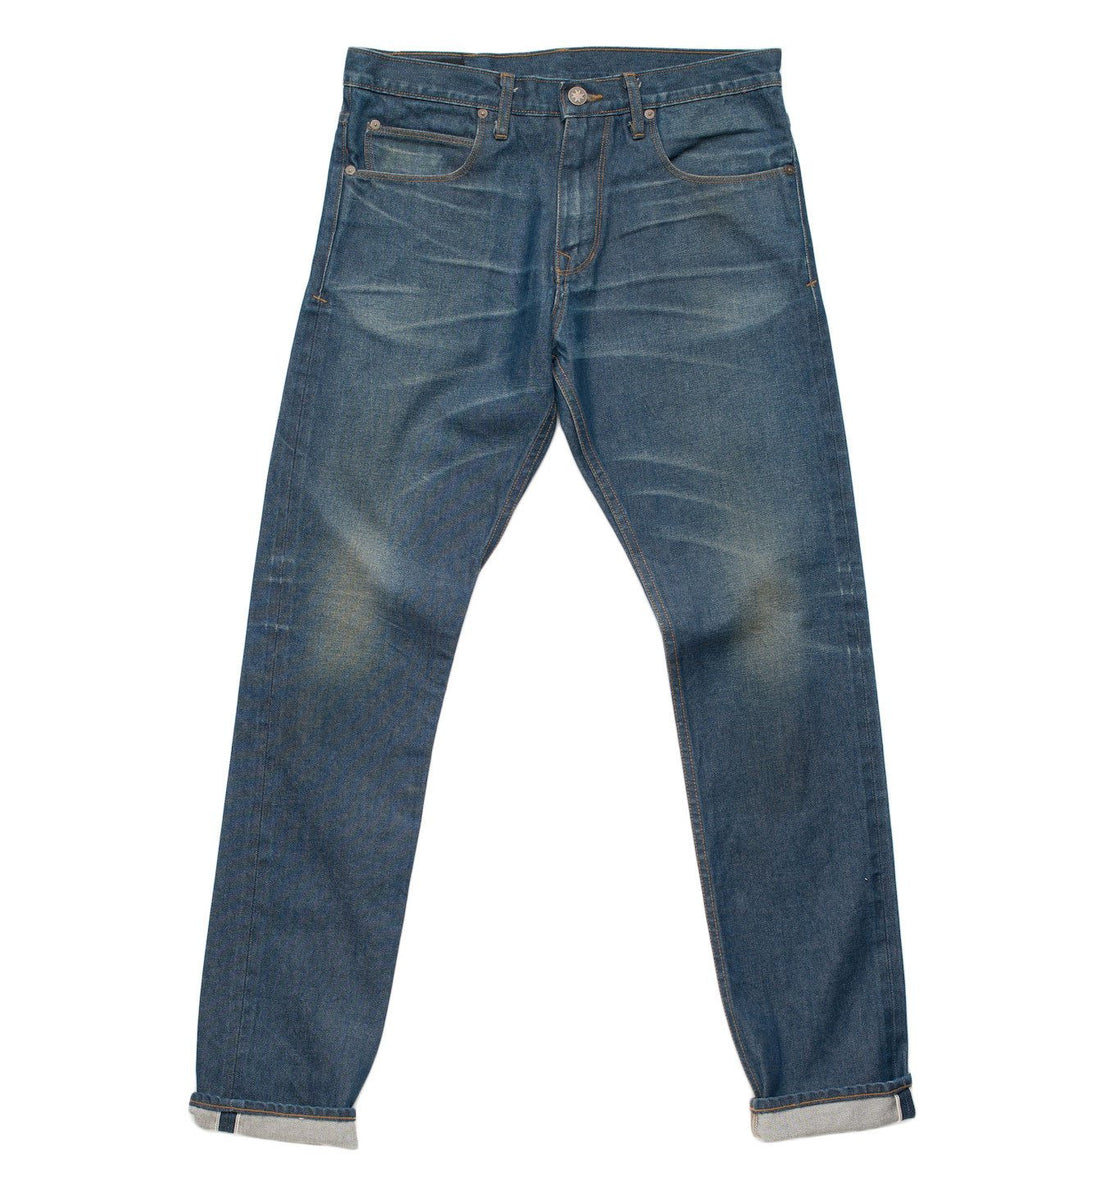 Freenote Rios Denim - Apparel: Men's: Pants - Iron and Resin